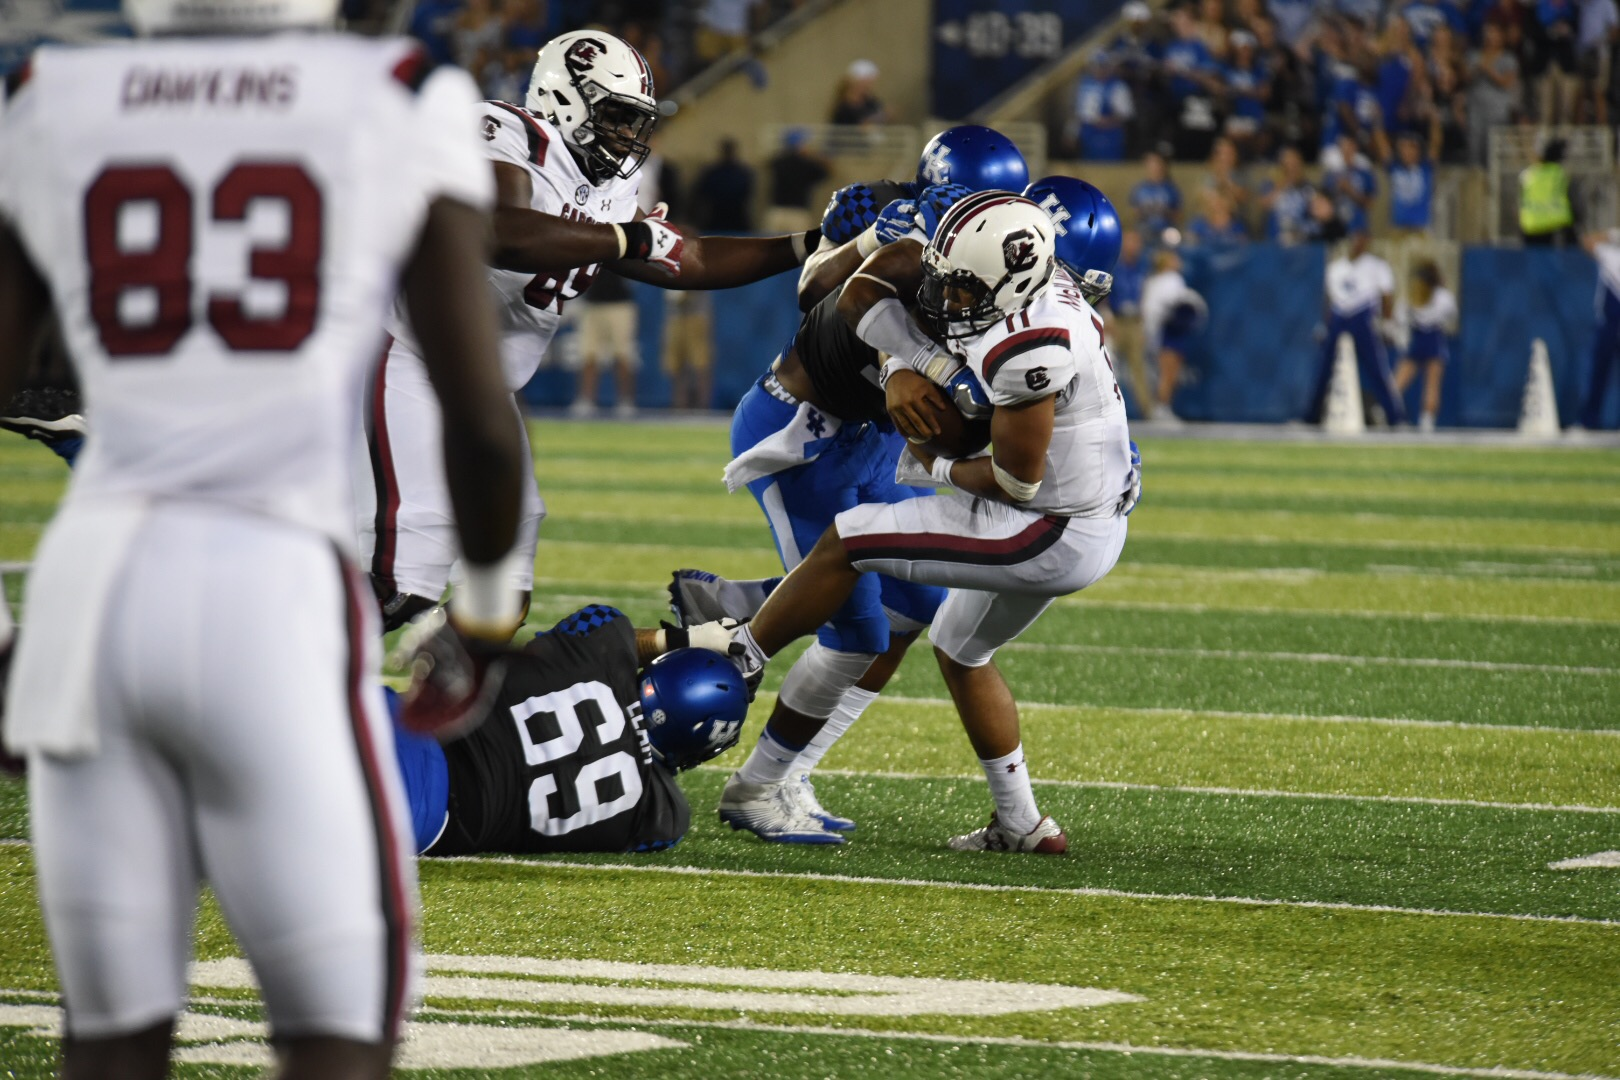 A big sack from the UK defense. Photo by Brandon Turner